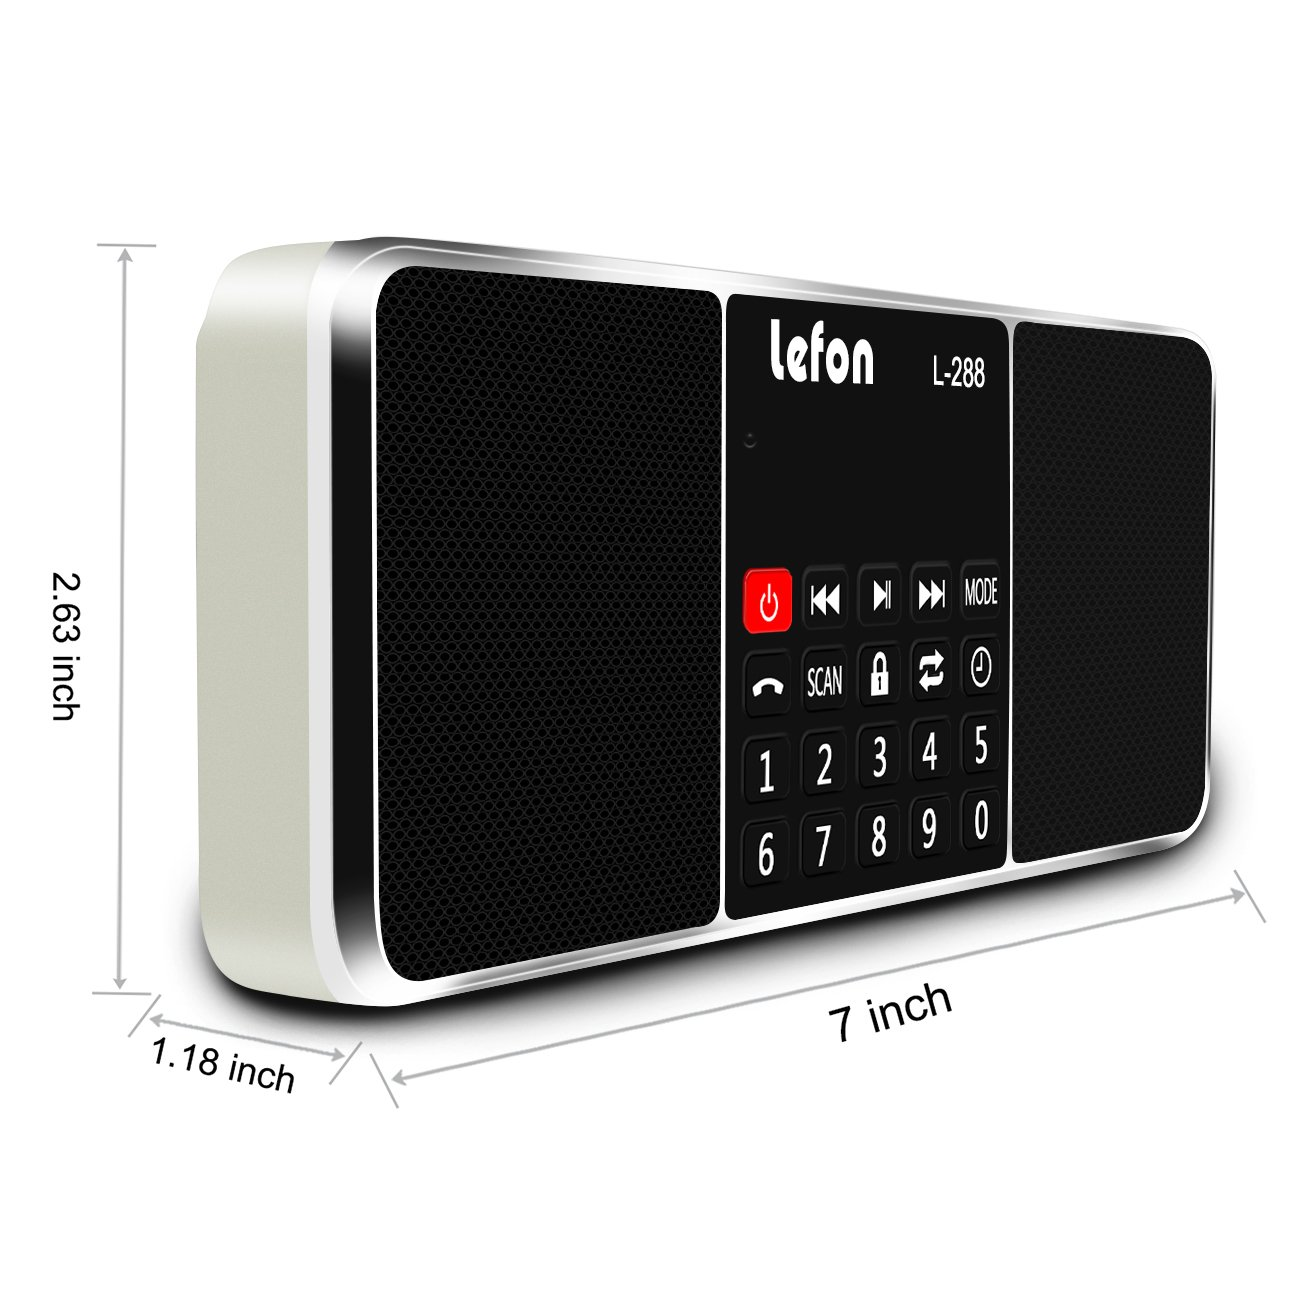 LEFON Multifunction Digital AM FM Radio Bluetooth Media Speaker MP3 Music Player Support TF Card/USB Disk with LED Screen Display and Setting Timing Shutdown Function (Gold-Upgraded Version) by Lefon (Image #7)